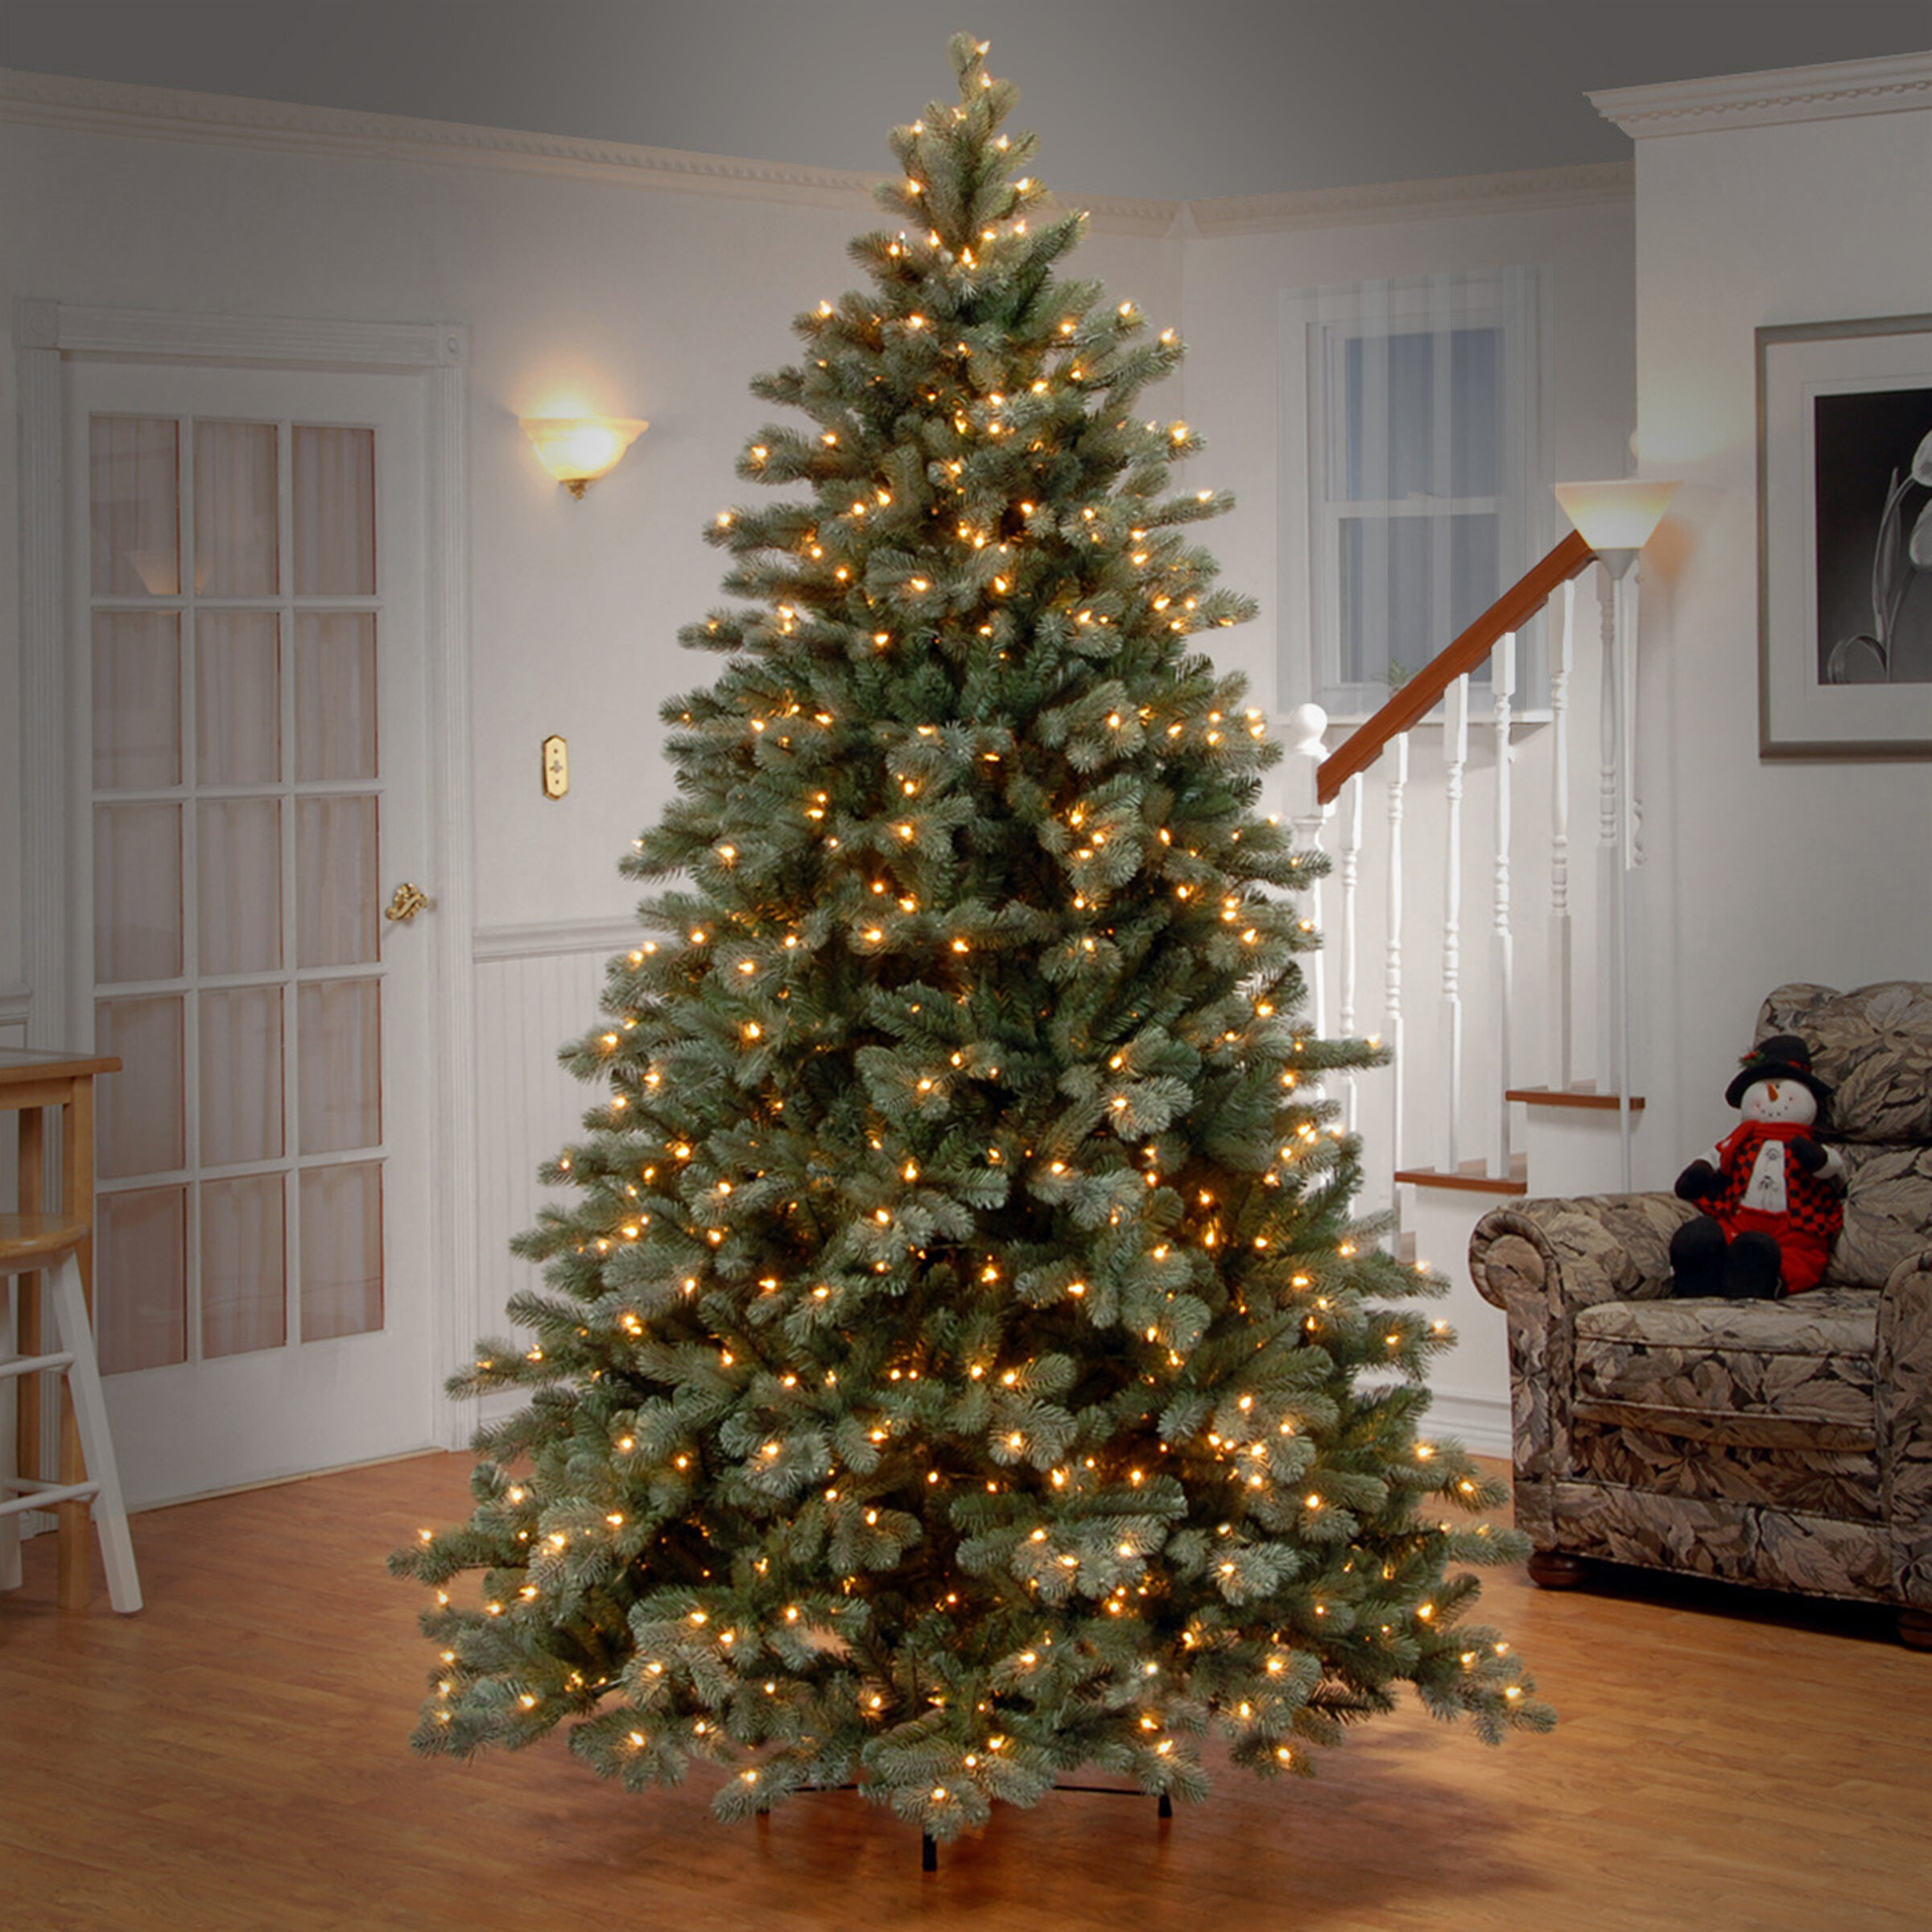 Faux Christmas Trees With Lights Cheaper Than Retail Price Buy Clothing Accessories And Lifestyle Products For Women Men